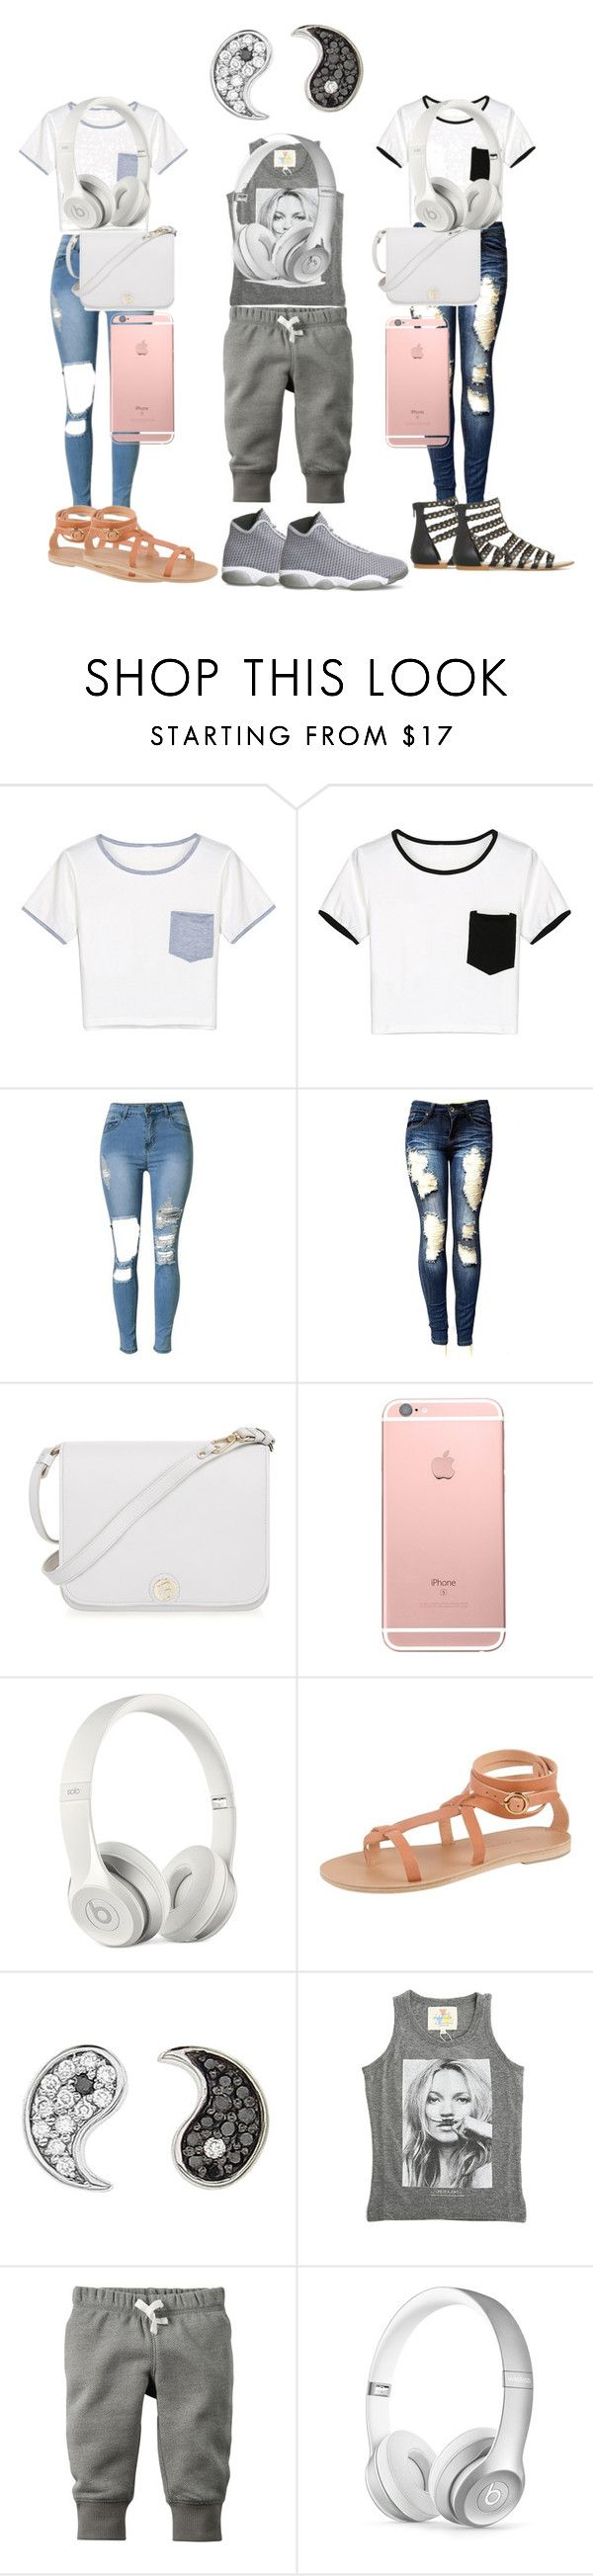 """""""family goals"""" by nilynn123 ❤ liked on Polyvore featuring WithChic, Furla, Beats by Dr. Dre, Valia Gabriel, Sydney Evan, ElevenParis and NIKE"""